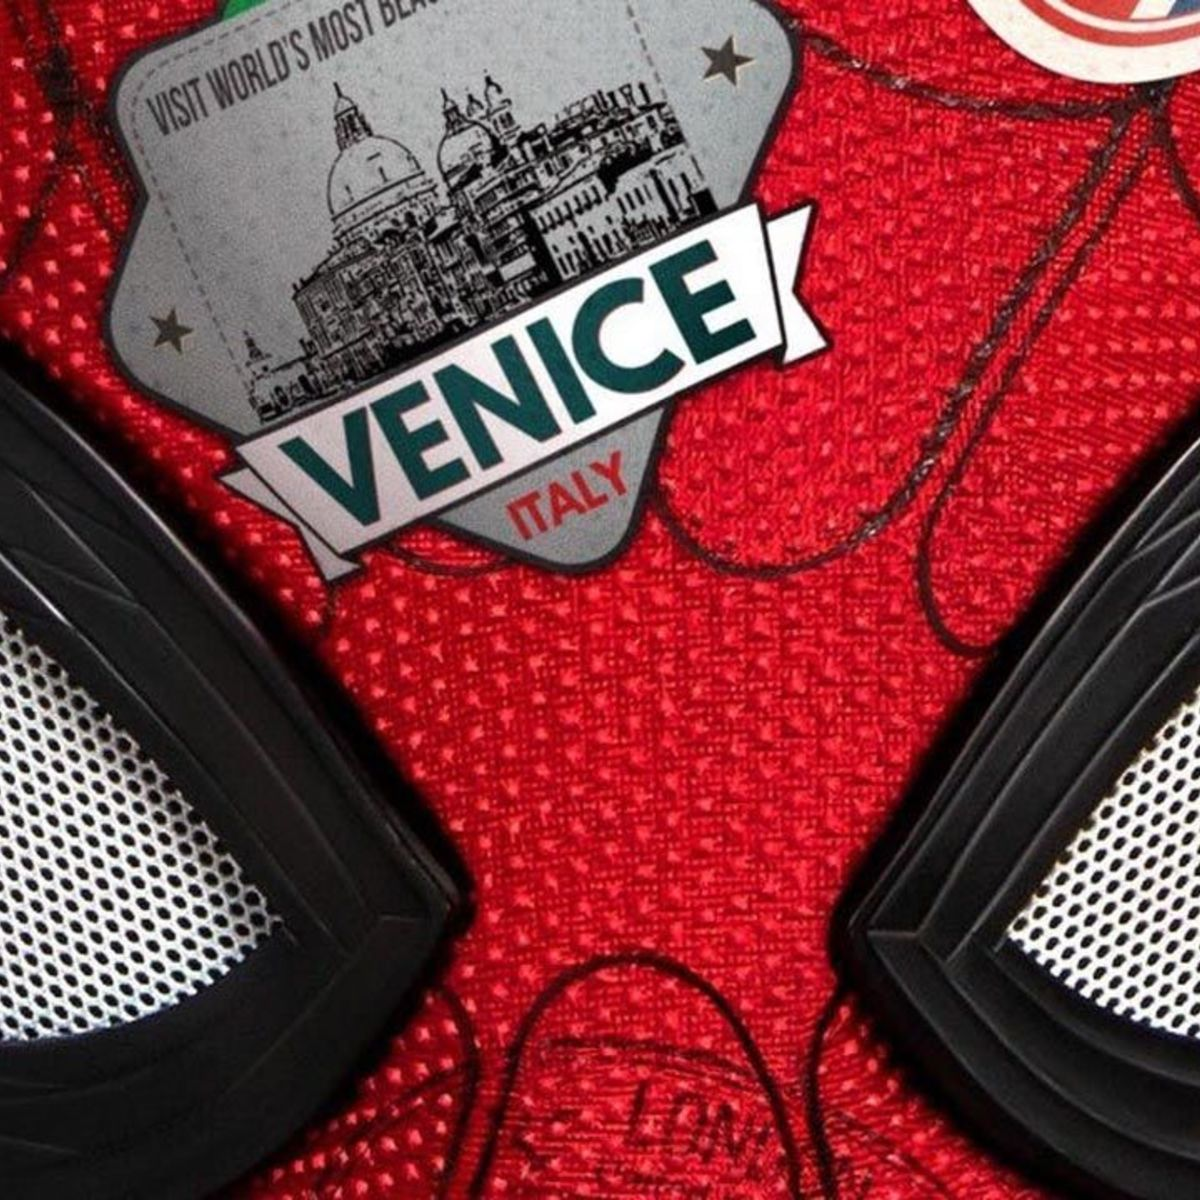 Spider-Man Far From home poster hero